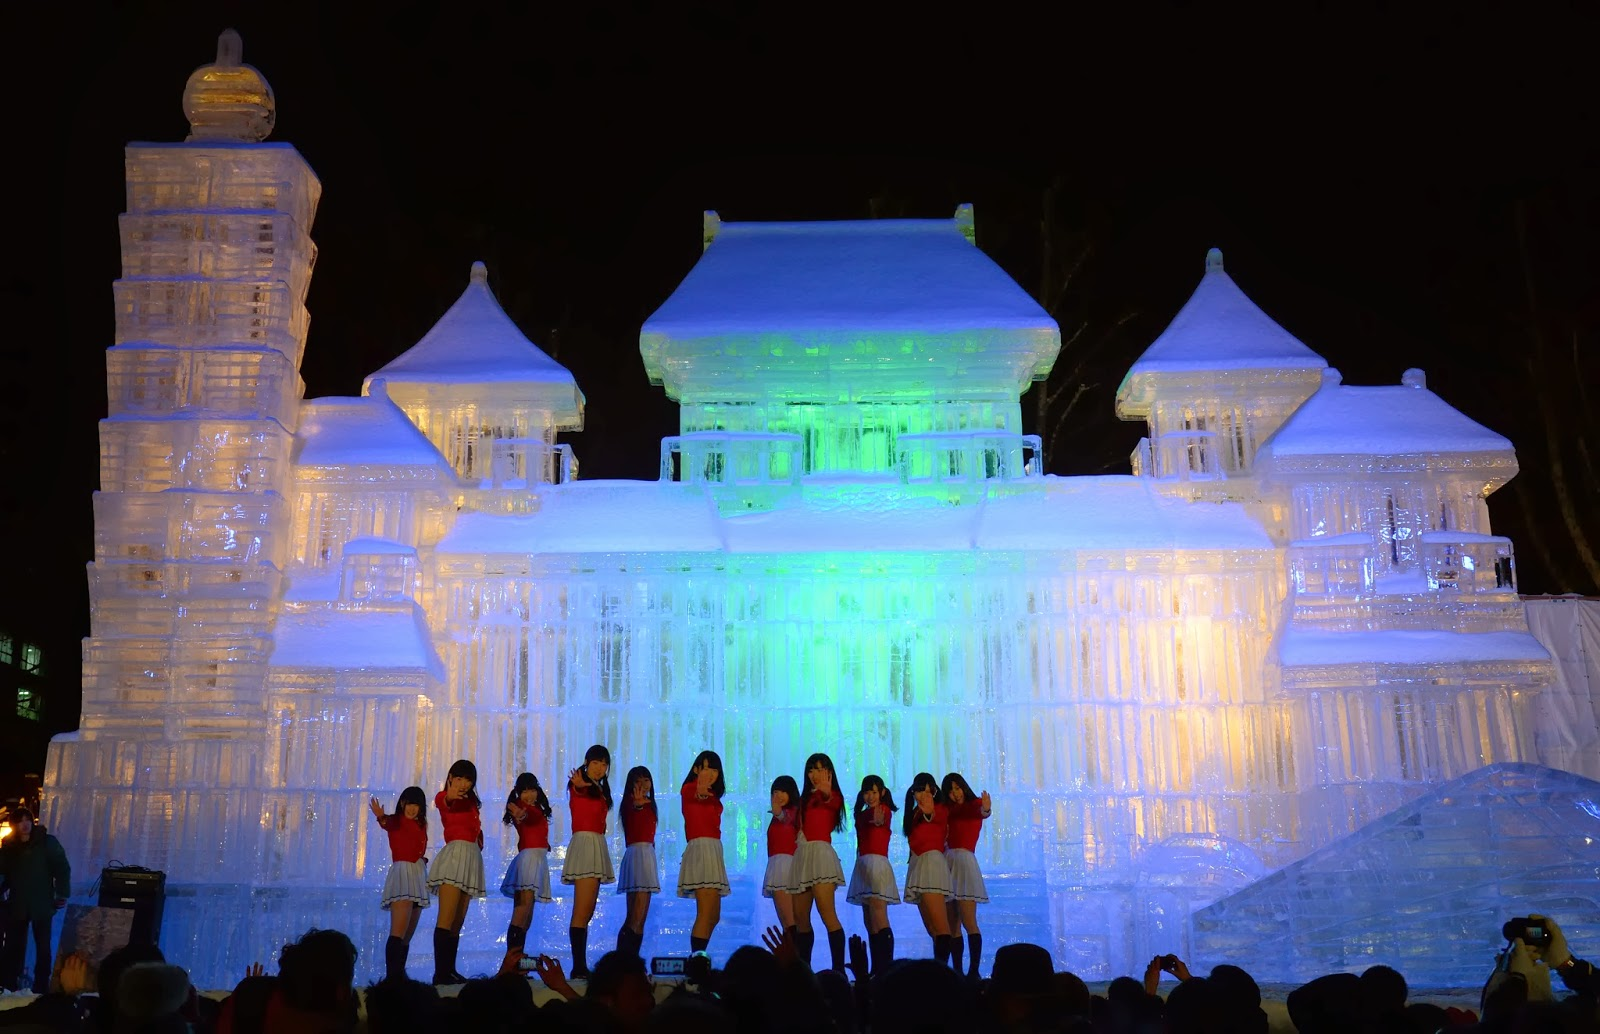 65th Annual, Sapporo, Snow Festival, Night, Lights, Color, Statue, Hokkaido, Exhibition, Tourism, Offbeat, Business, Creation, National Palace Museum, Places, Taipei, Tomb of Itmad-ud-Daula, Animation, Winter Sports Paradise, Art, Japan,